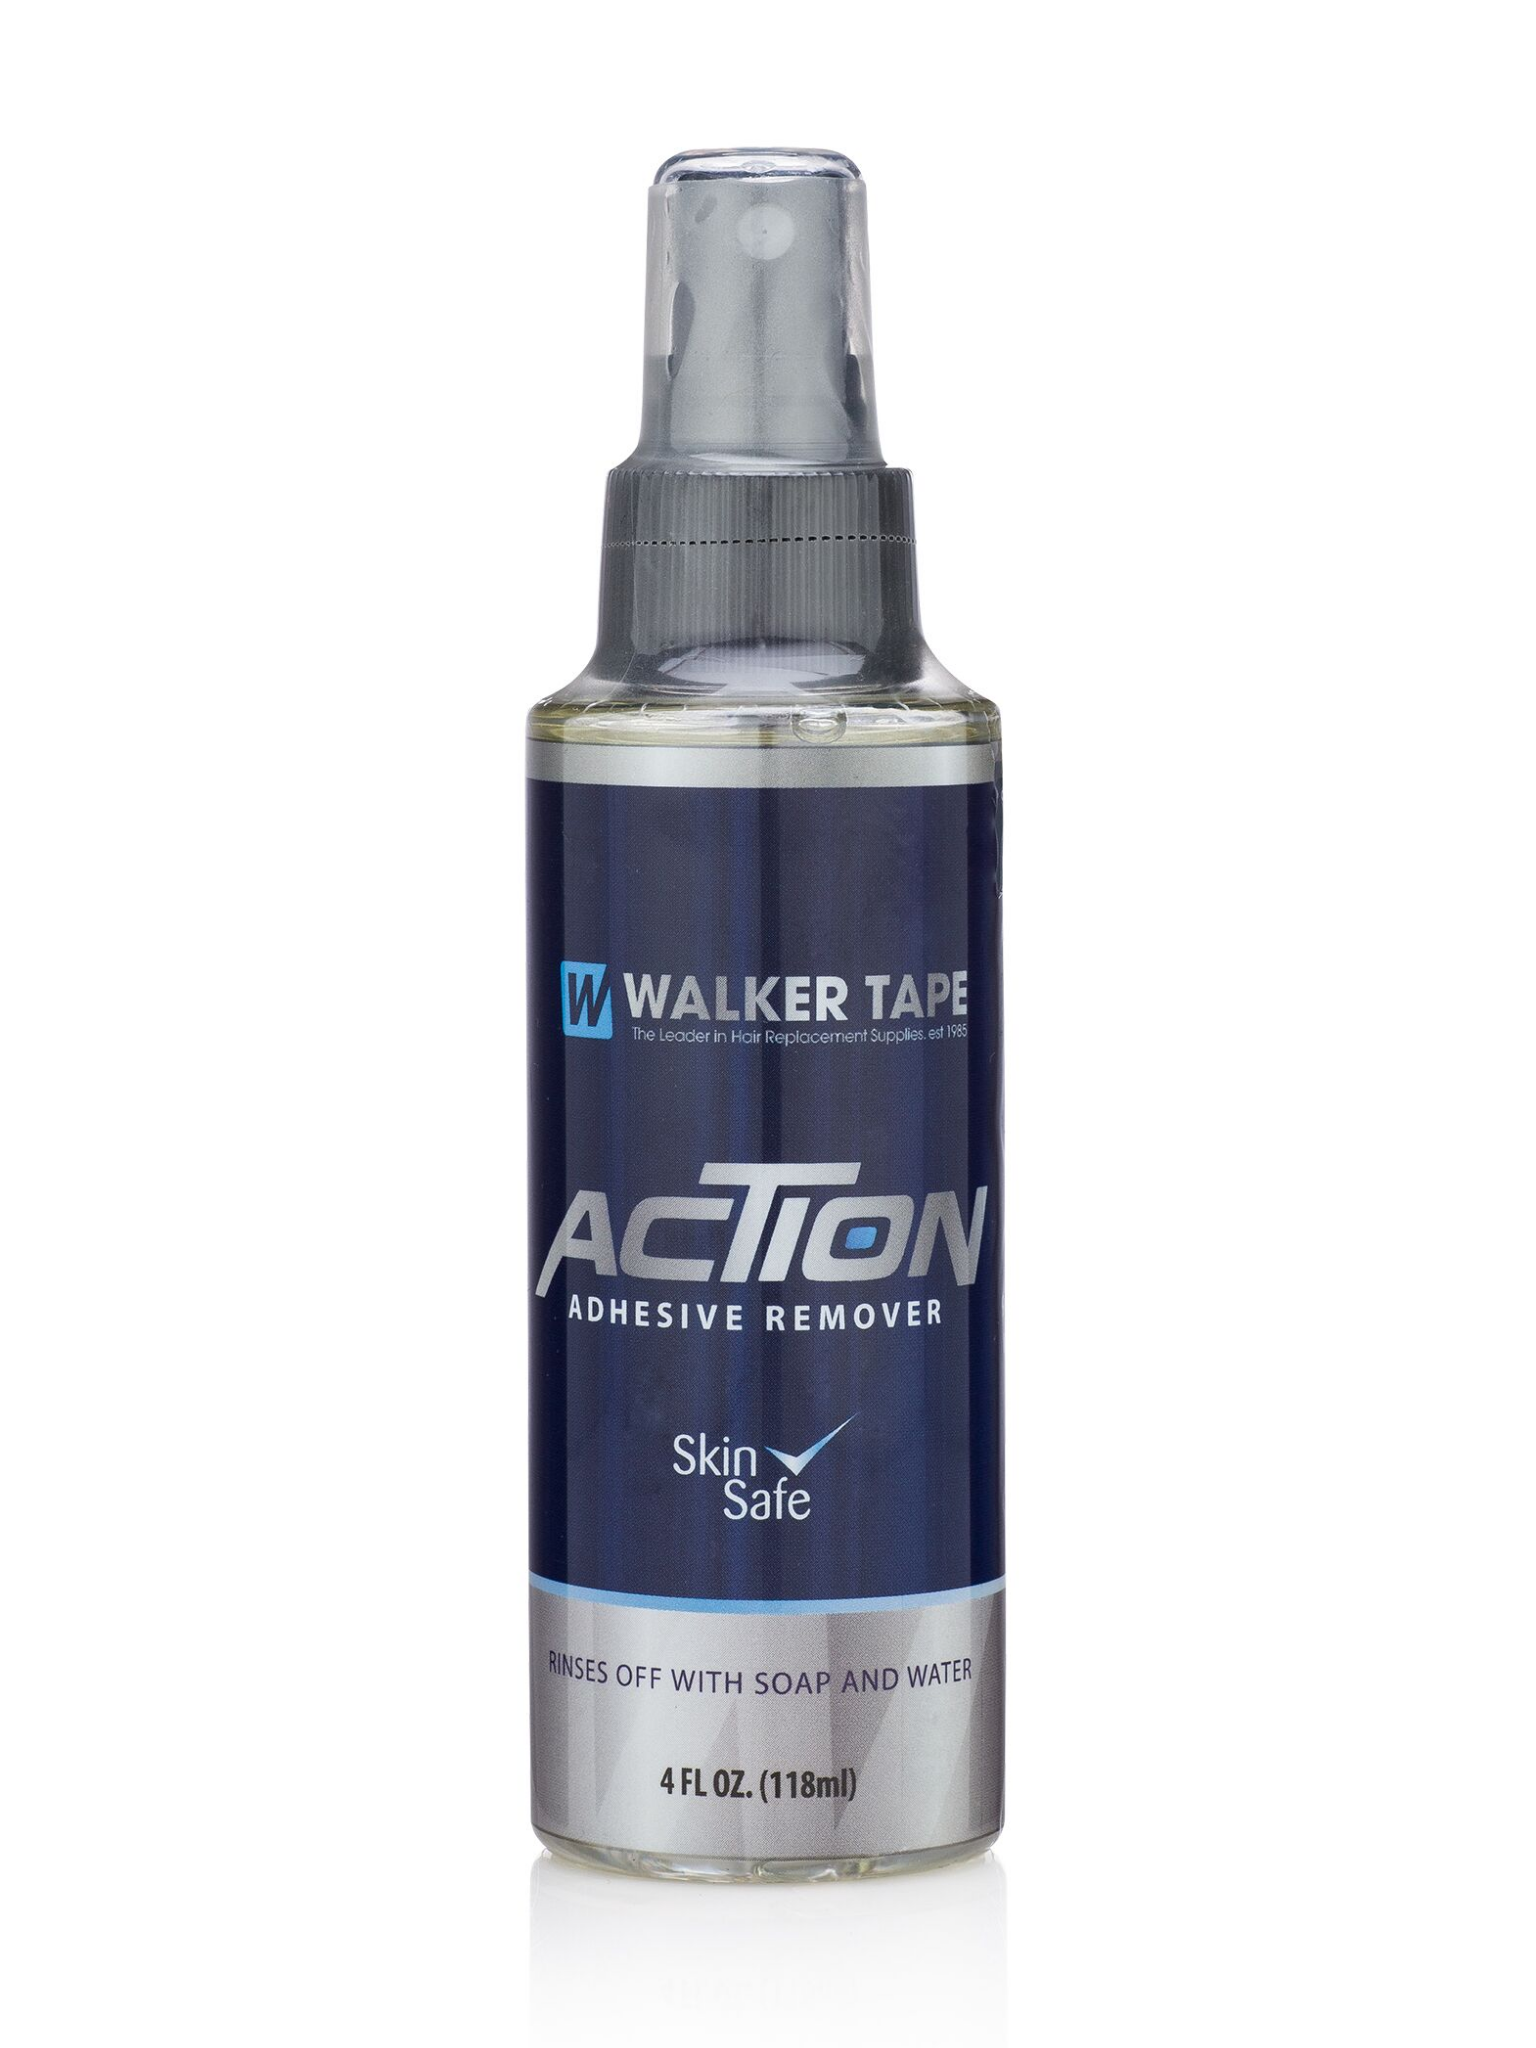 Action Release - Tape Adhesive Remover